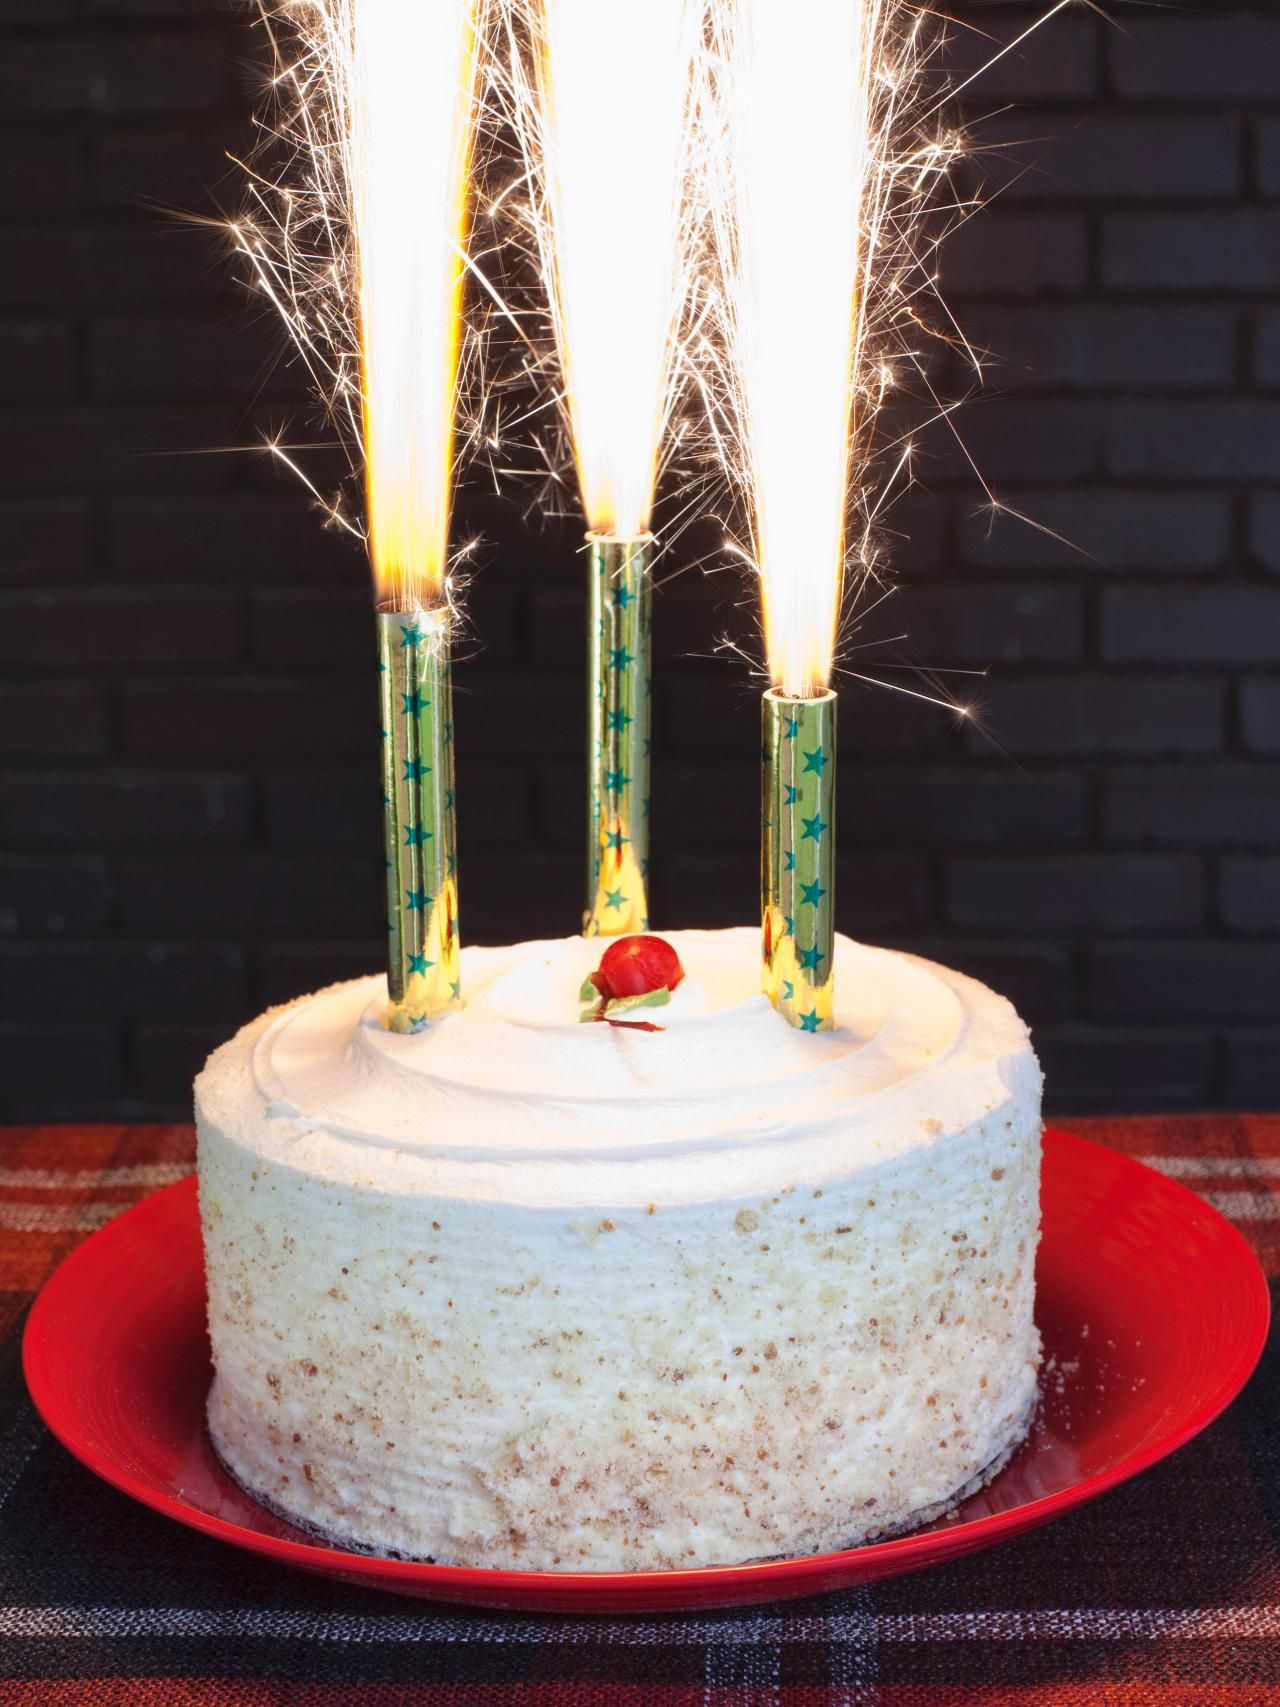 How To Use Sparklers On A Cake